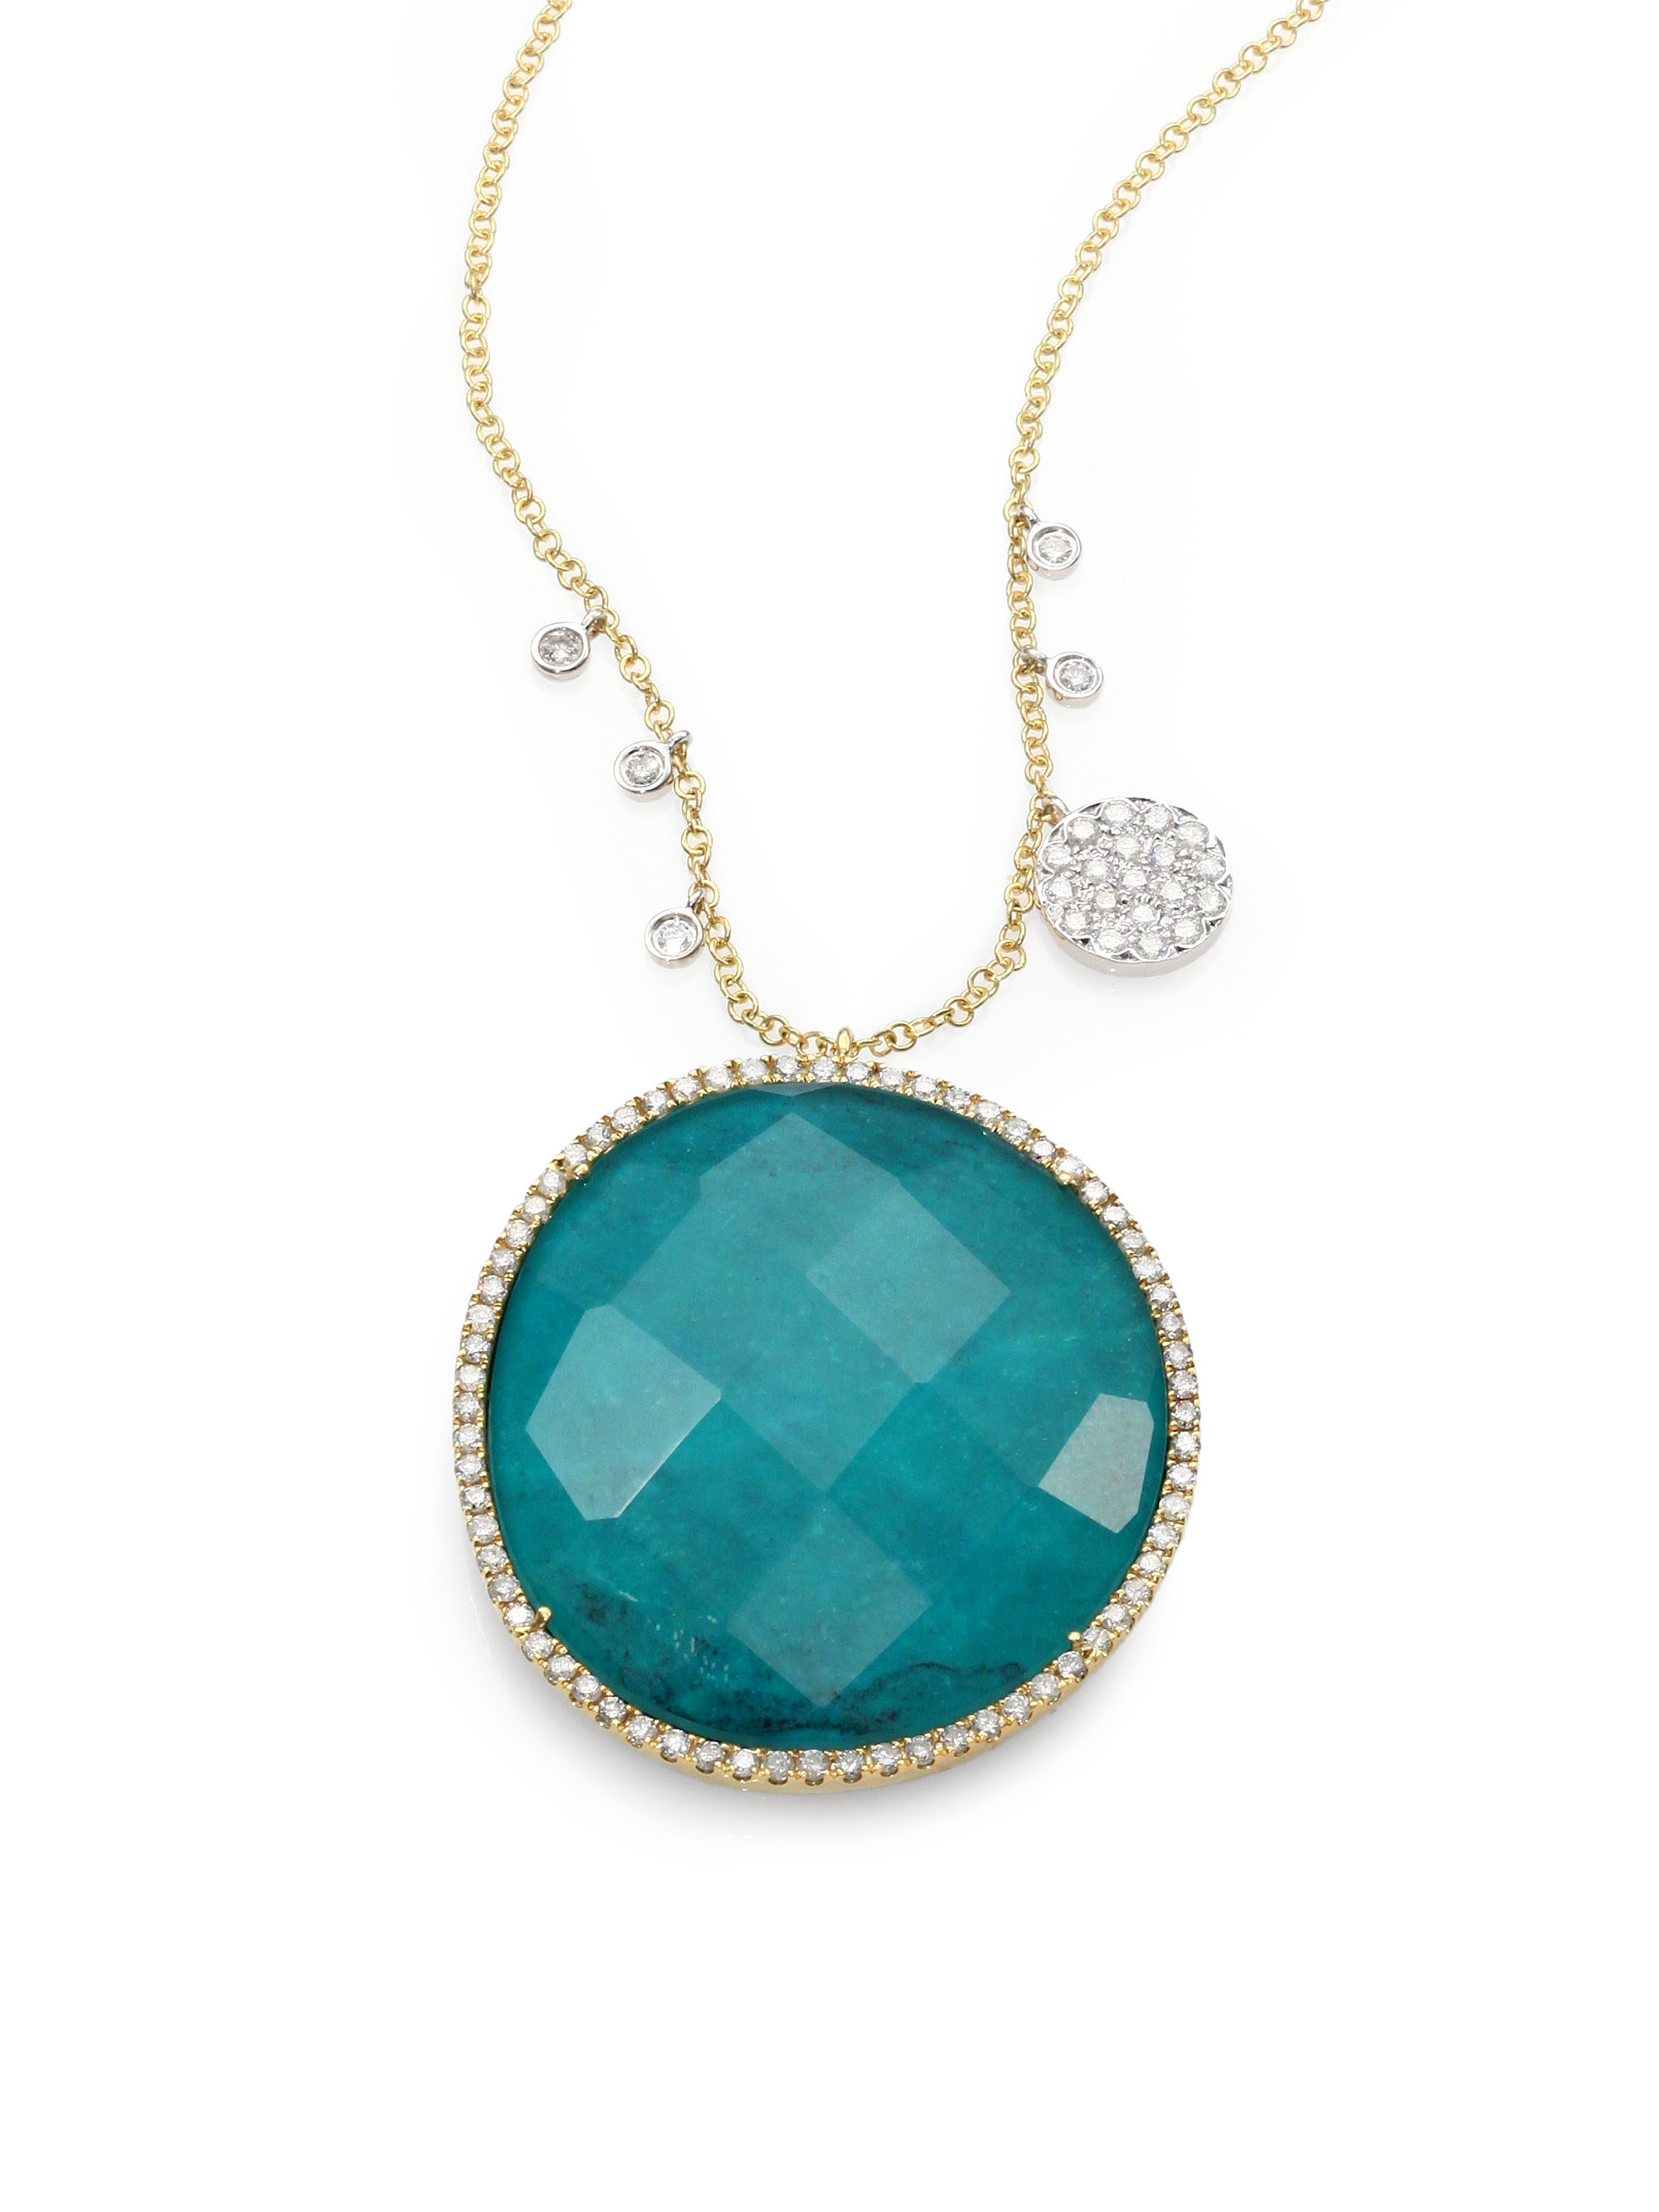 Meira t Black Turquoise Doublet Diamond 14k White Gold Necklace in